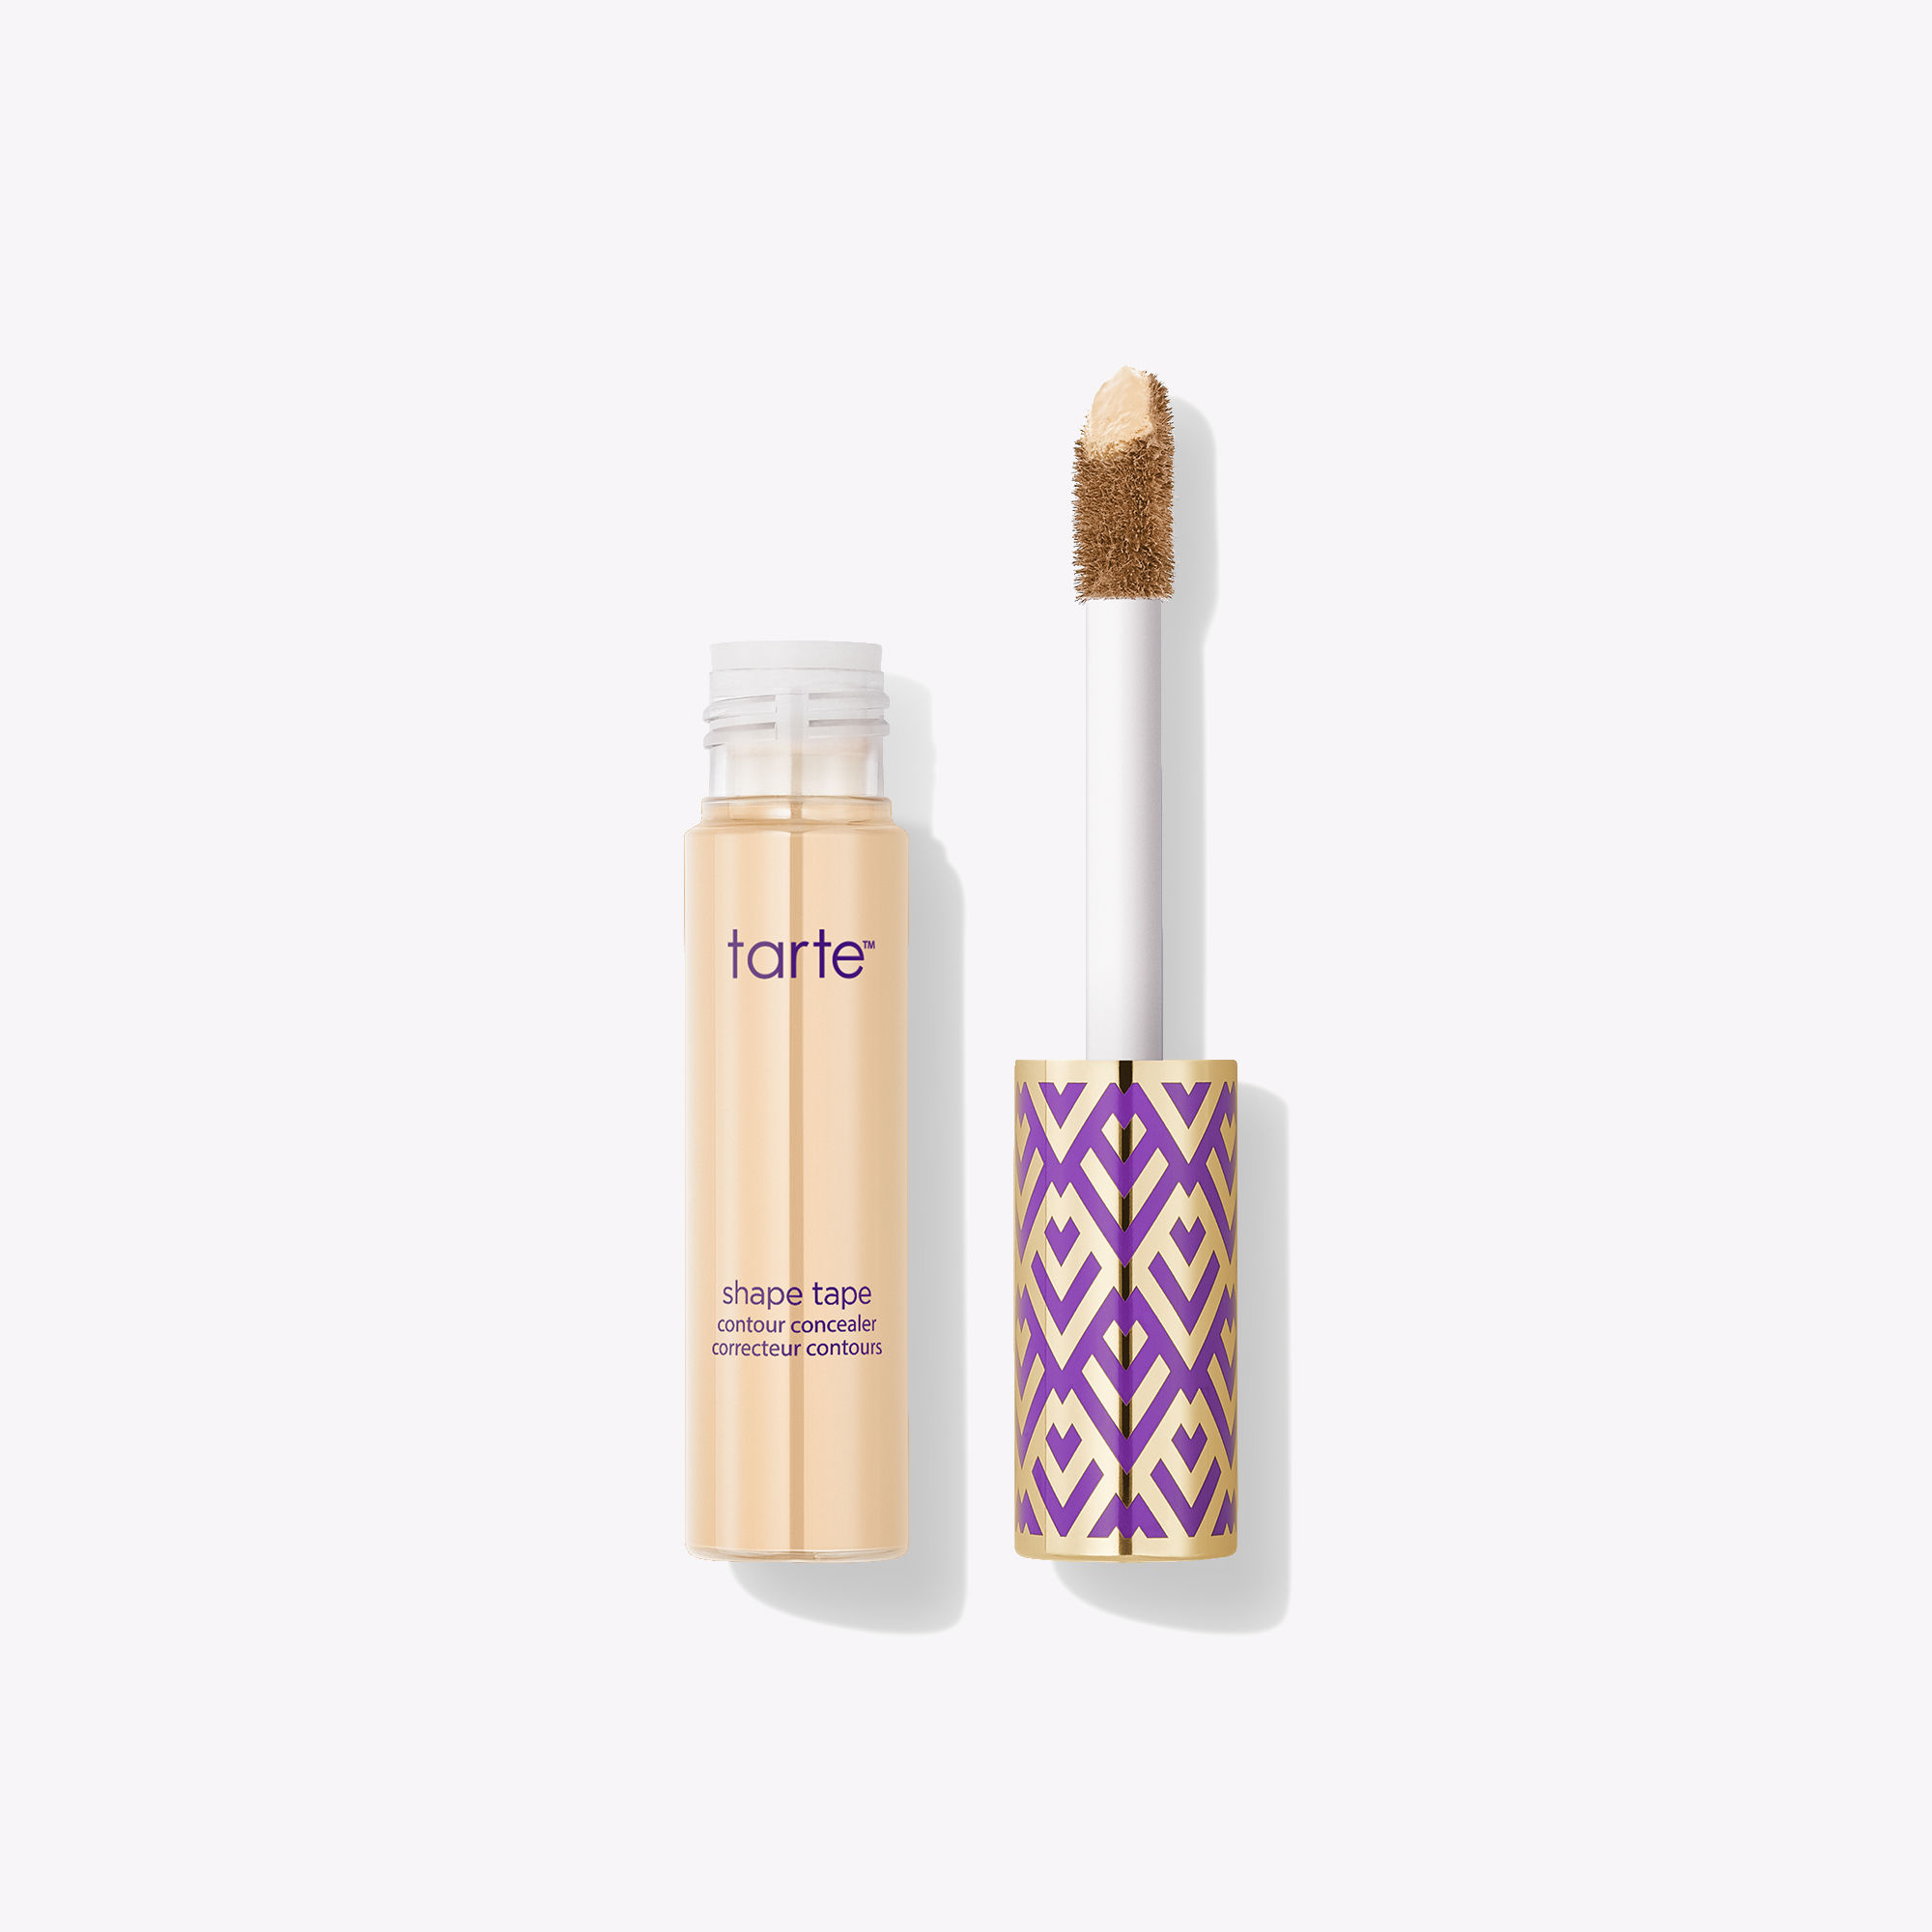 C O N C E A L E R - Best. Concealer. Ever. I have it in 12N - fair neutral.This also works great for contouring.